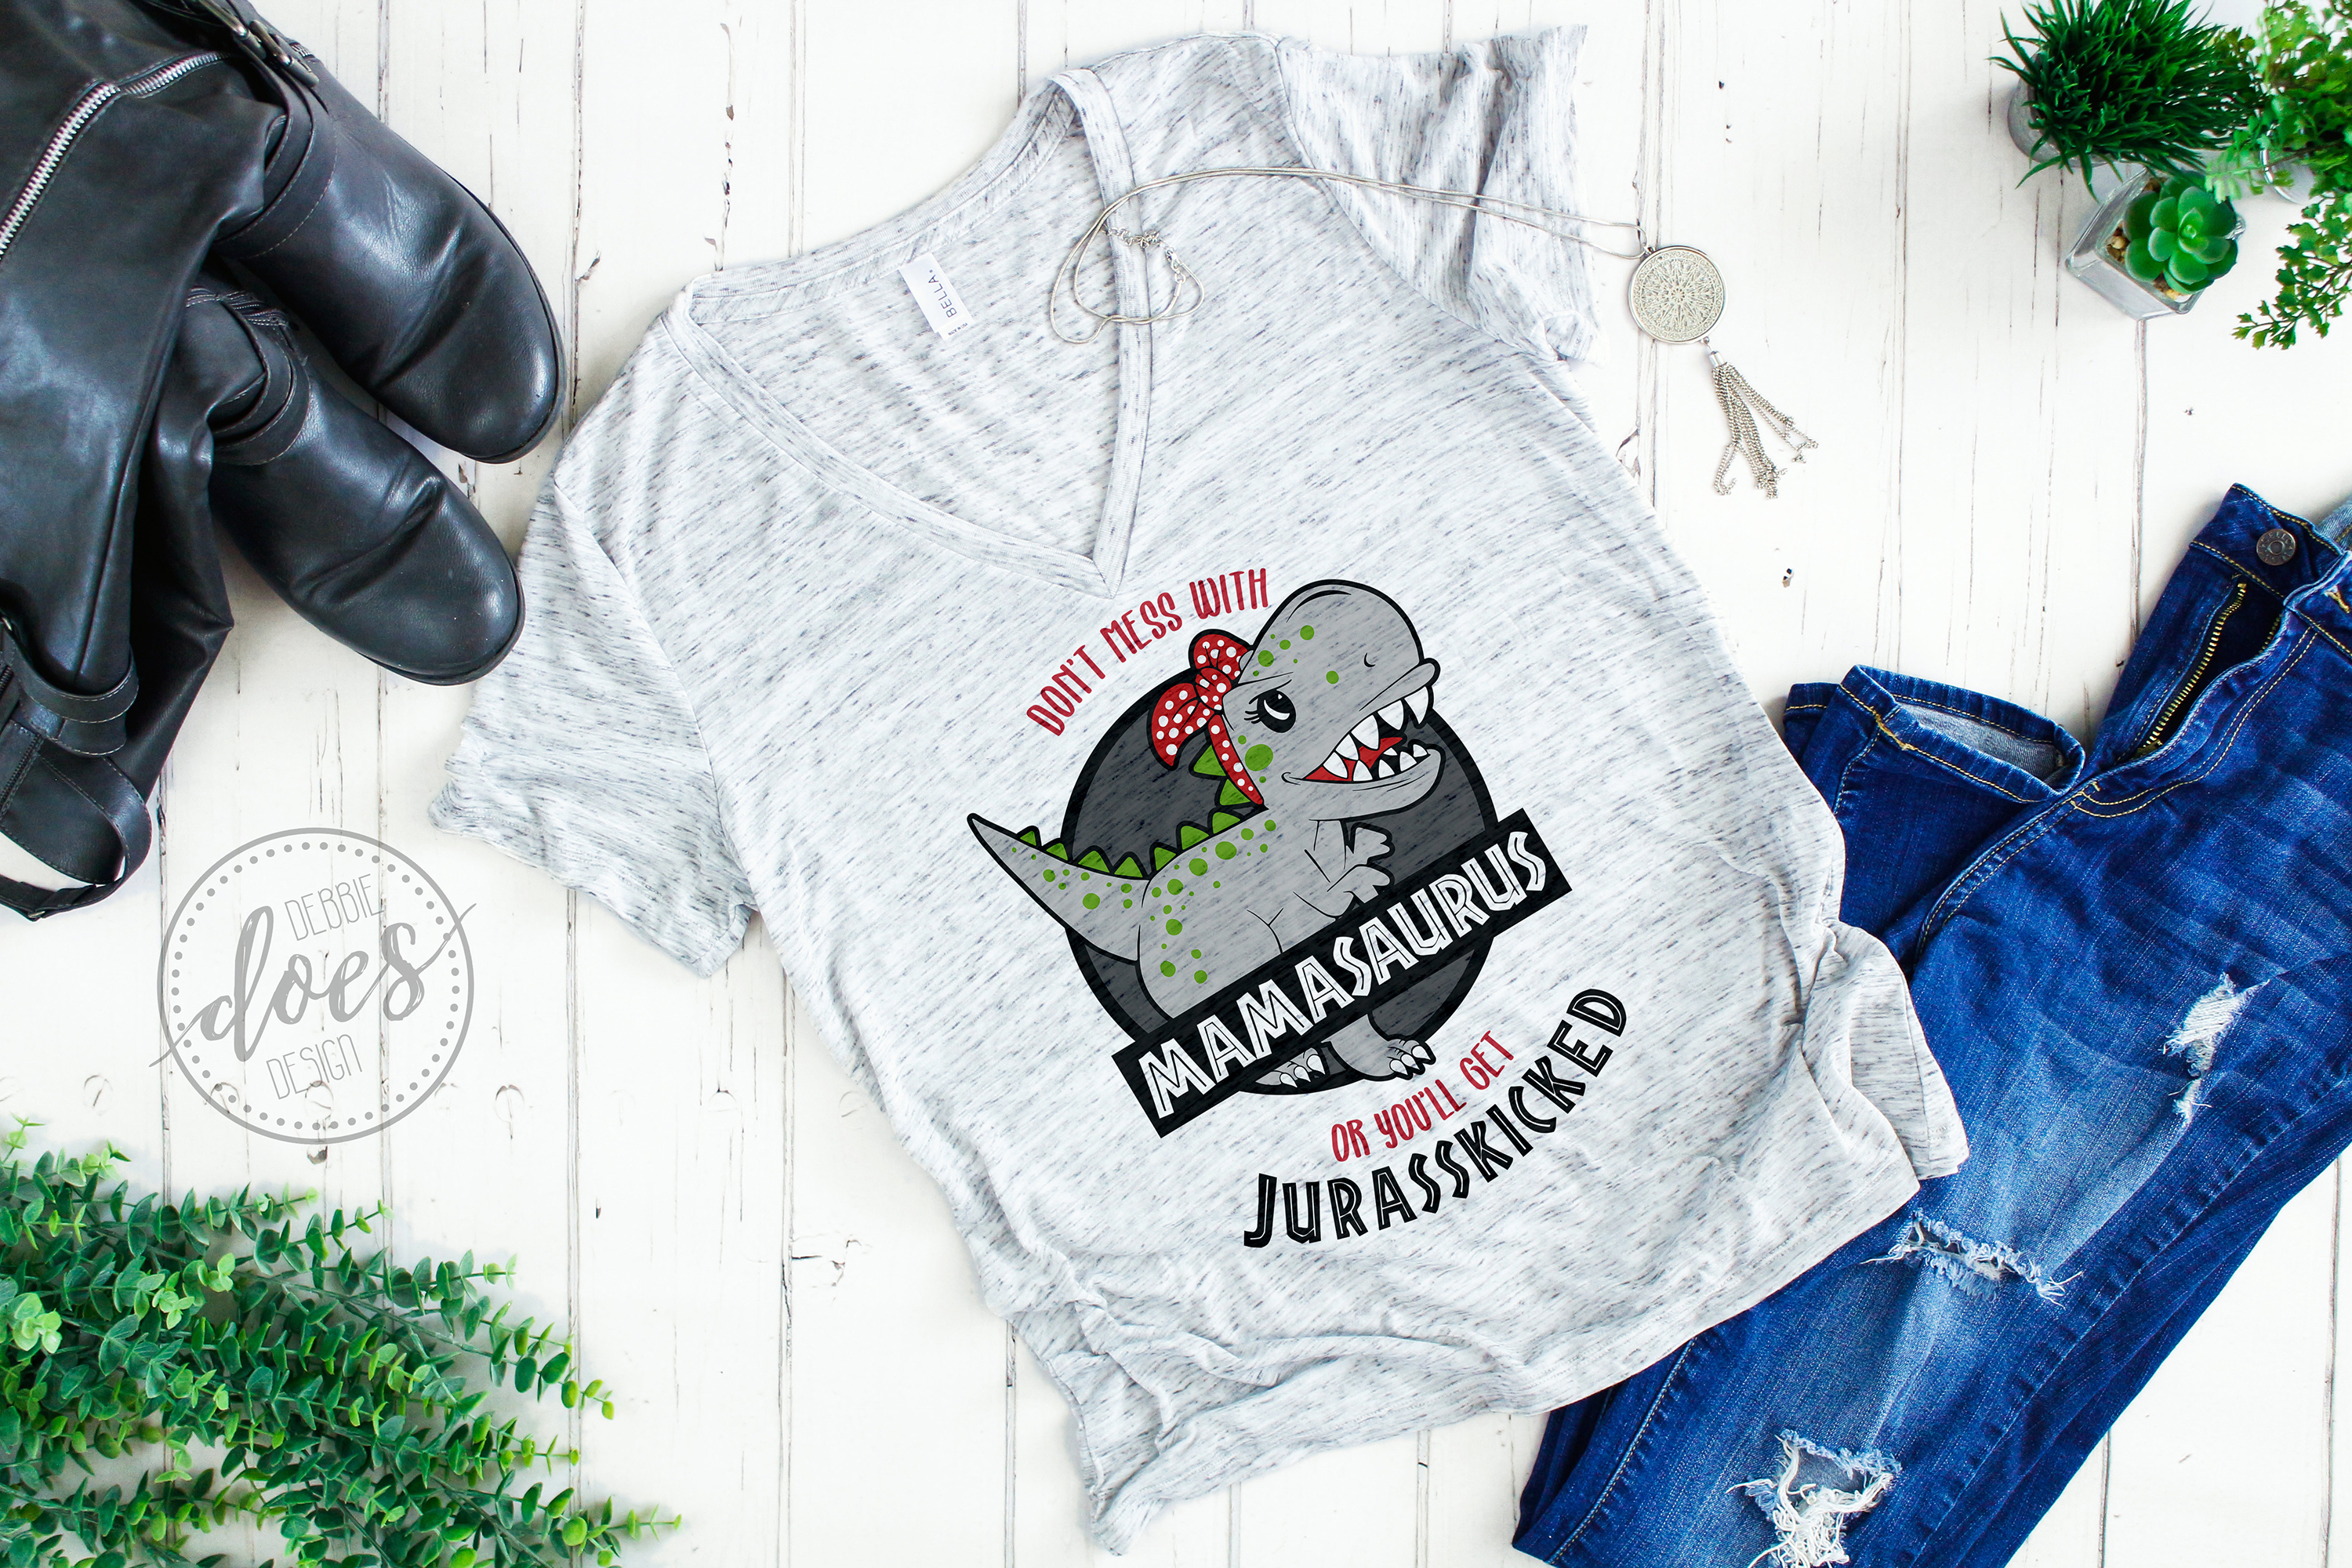 Don't Mess With Mamasaurus or You'll Get Jurasskicked - SVG example image 2